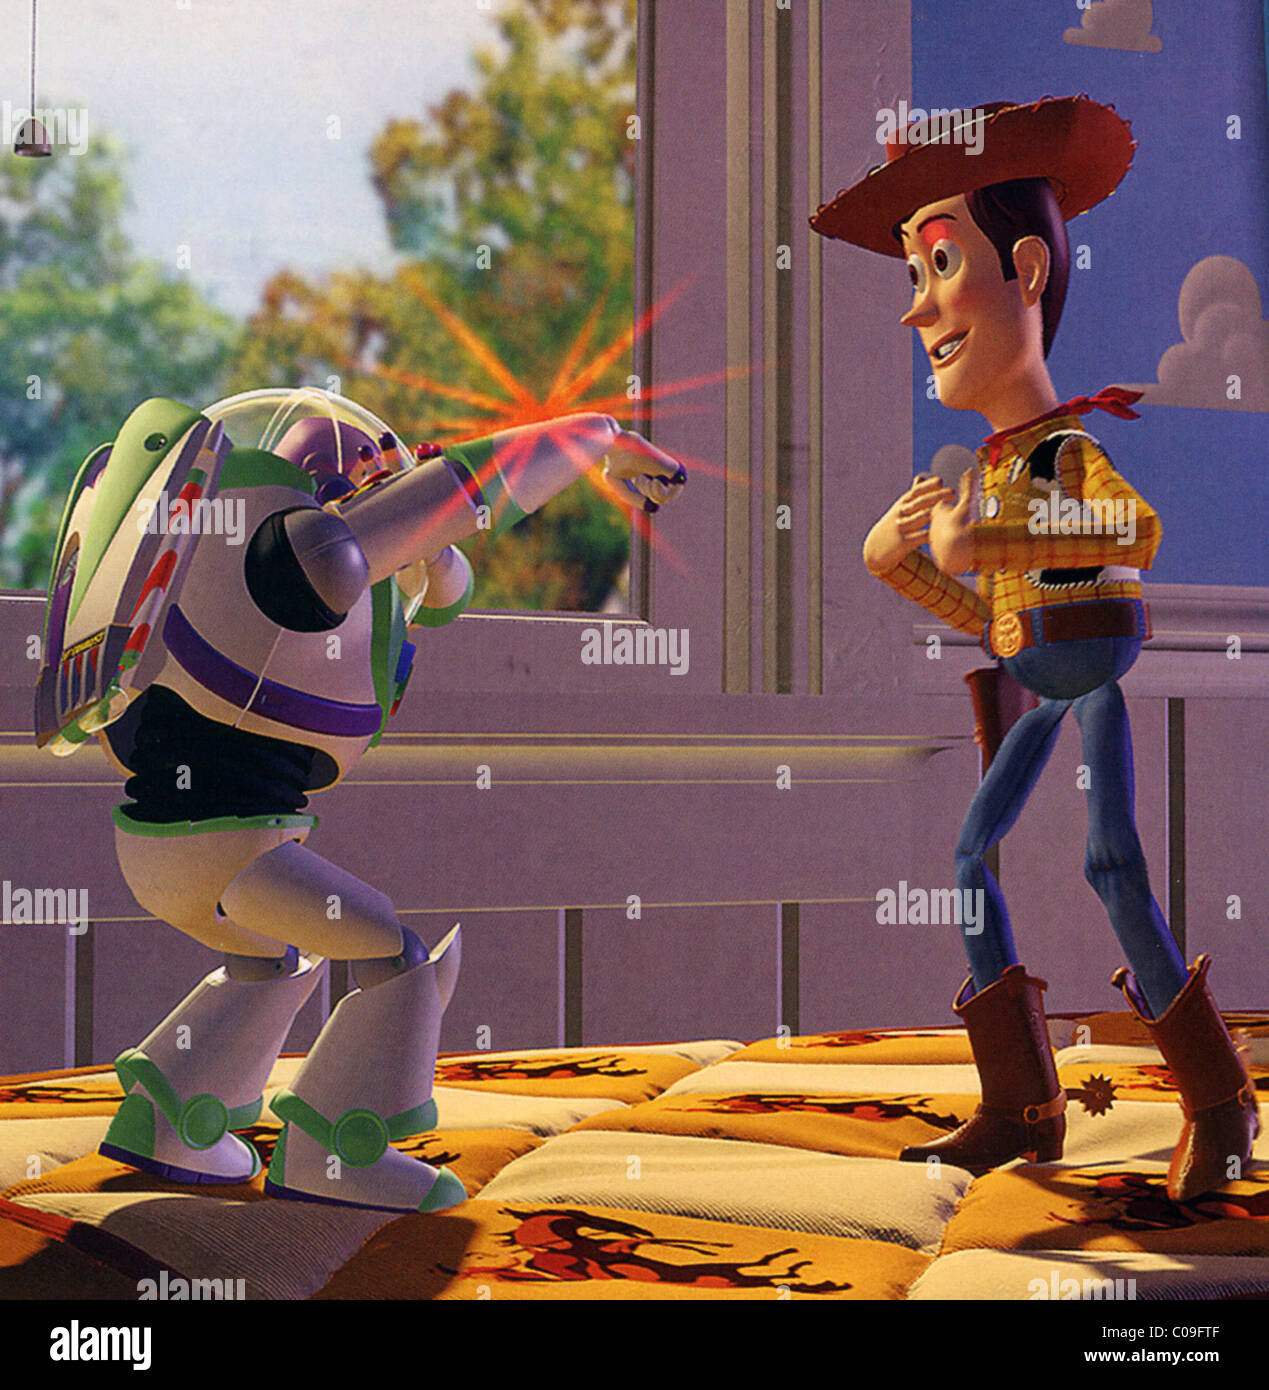 TOY STORY  1995 Pixar Animation Studios/ Walt Disney Pictures animation with Buzz Lightyear at left and Woody. - Stock Image